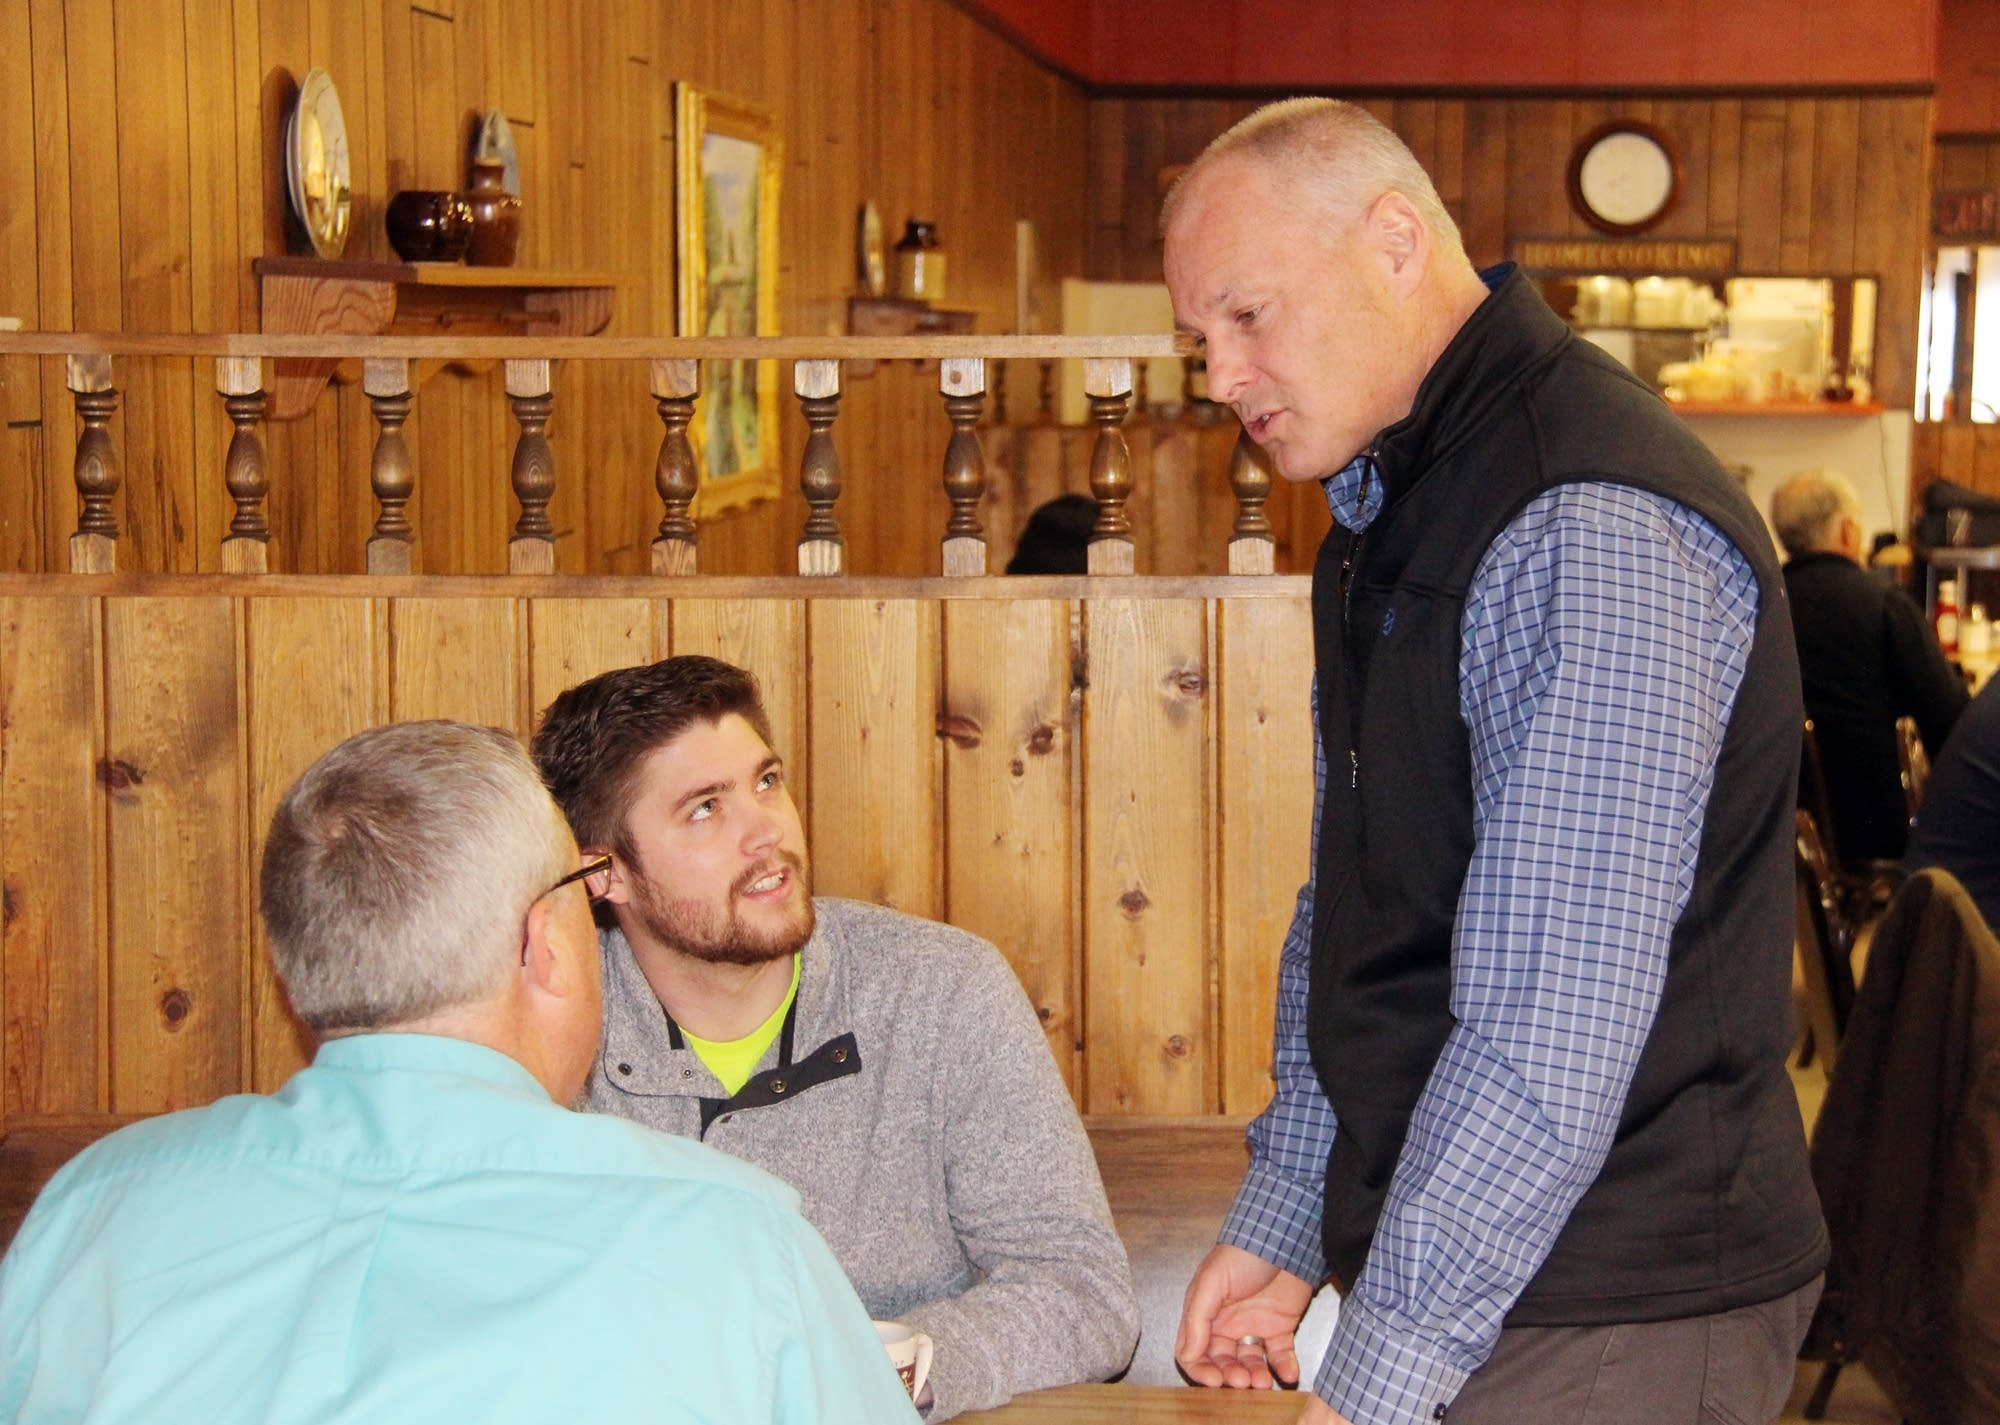 Pete Stauber introduced himself to potential supporters in Cambridge.